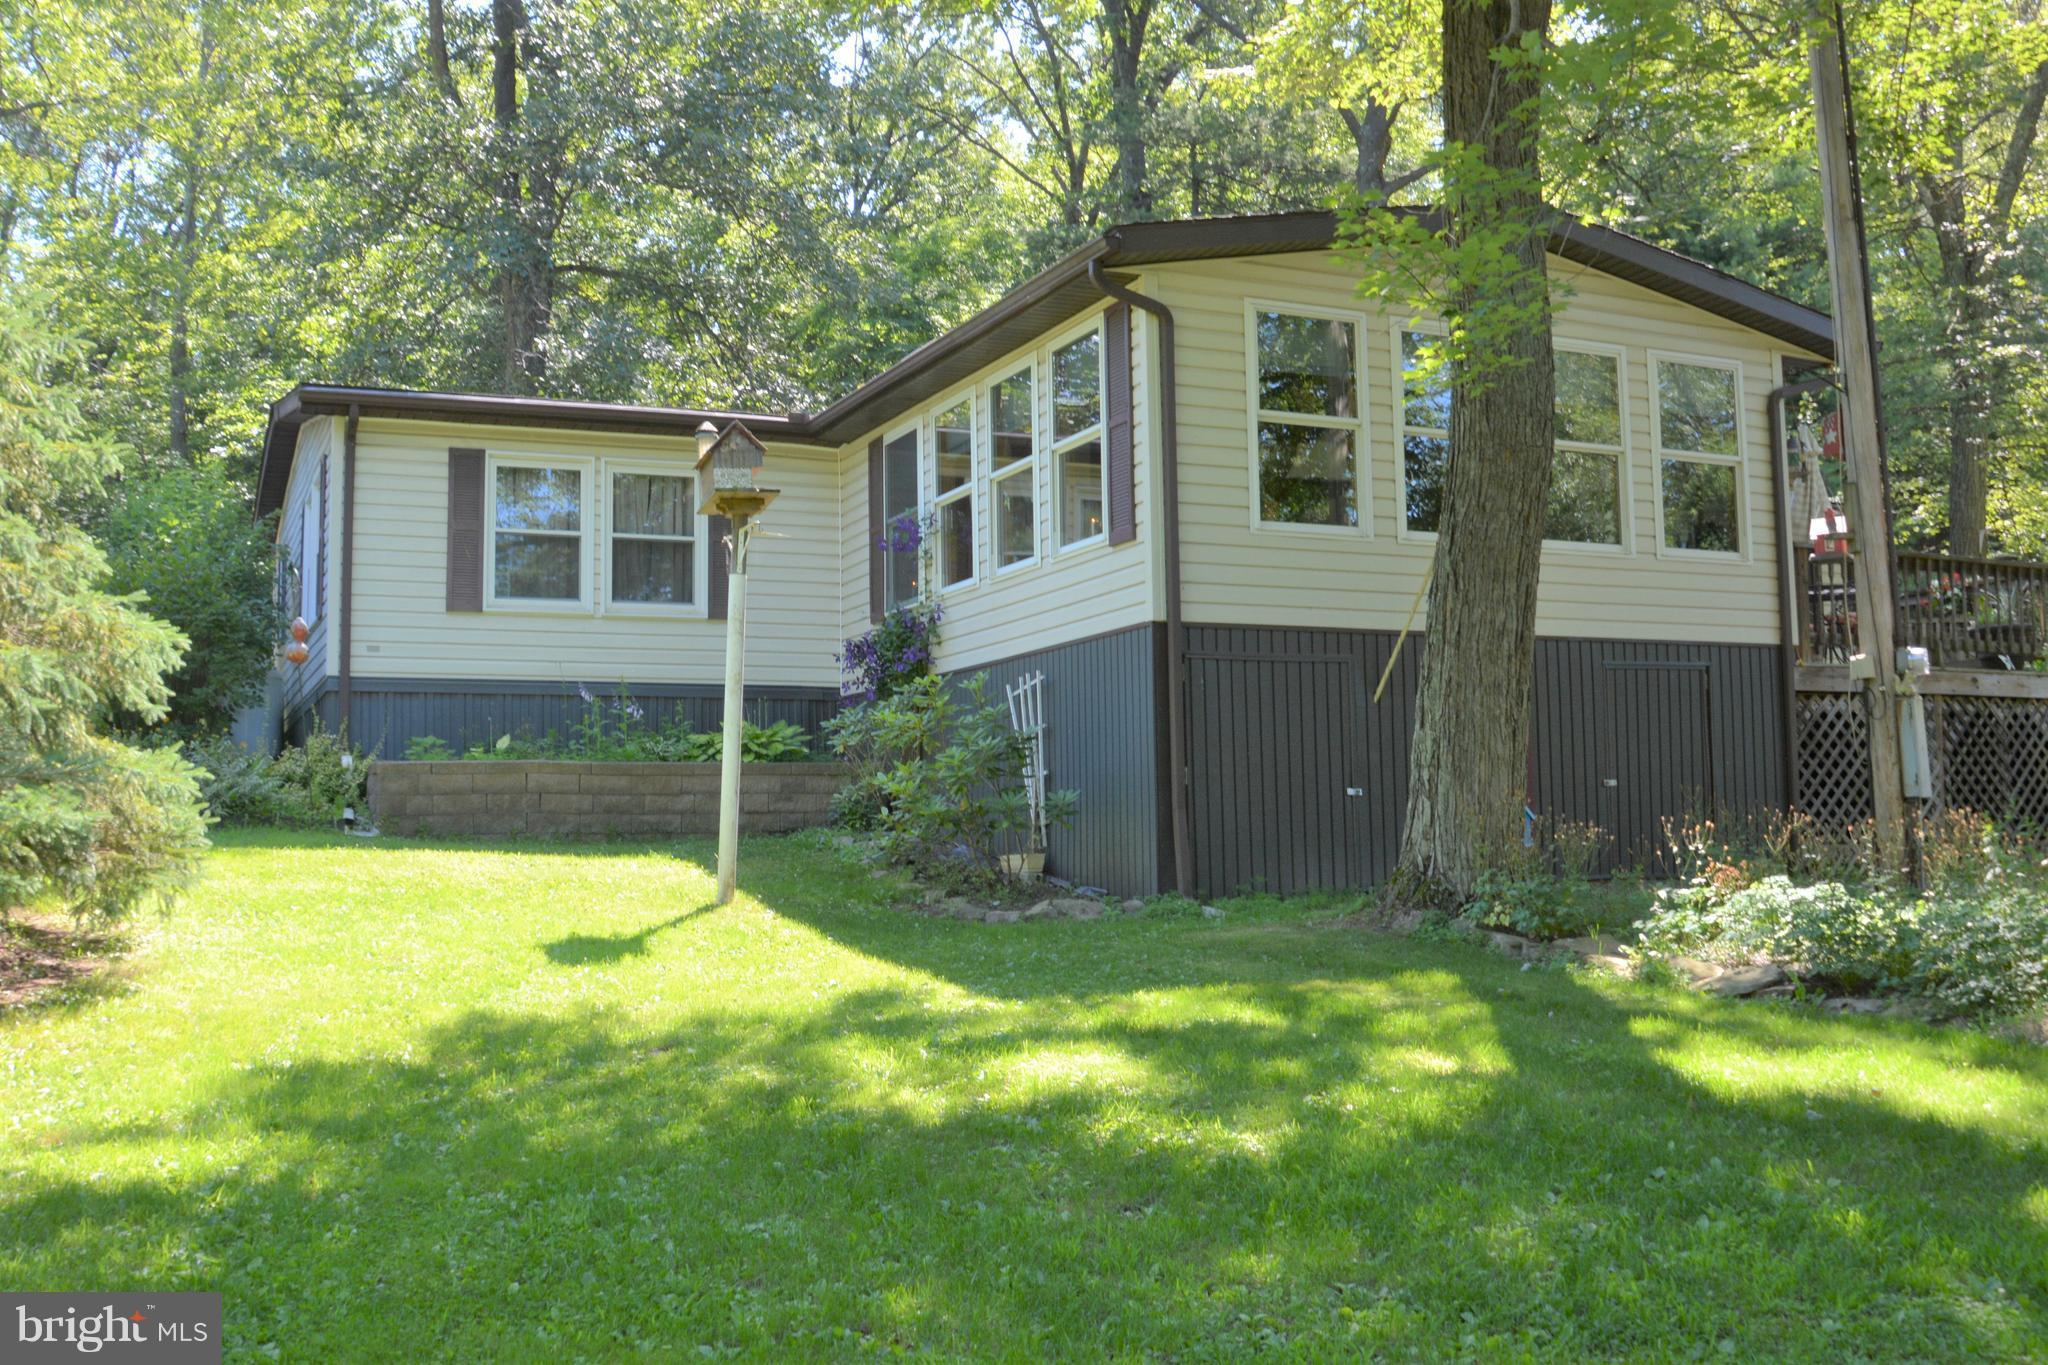 1278 LINCOLN HIGHWAY, CRYSTAL SPRING, PA 15536